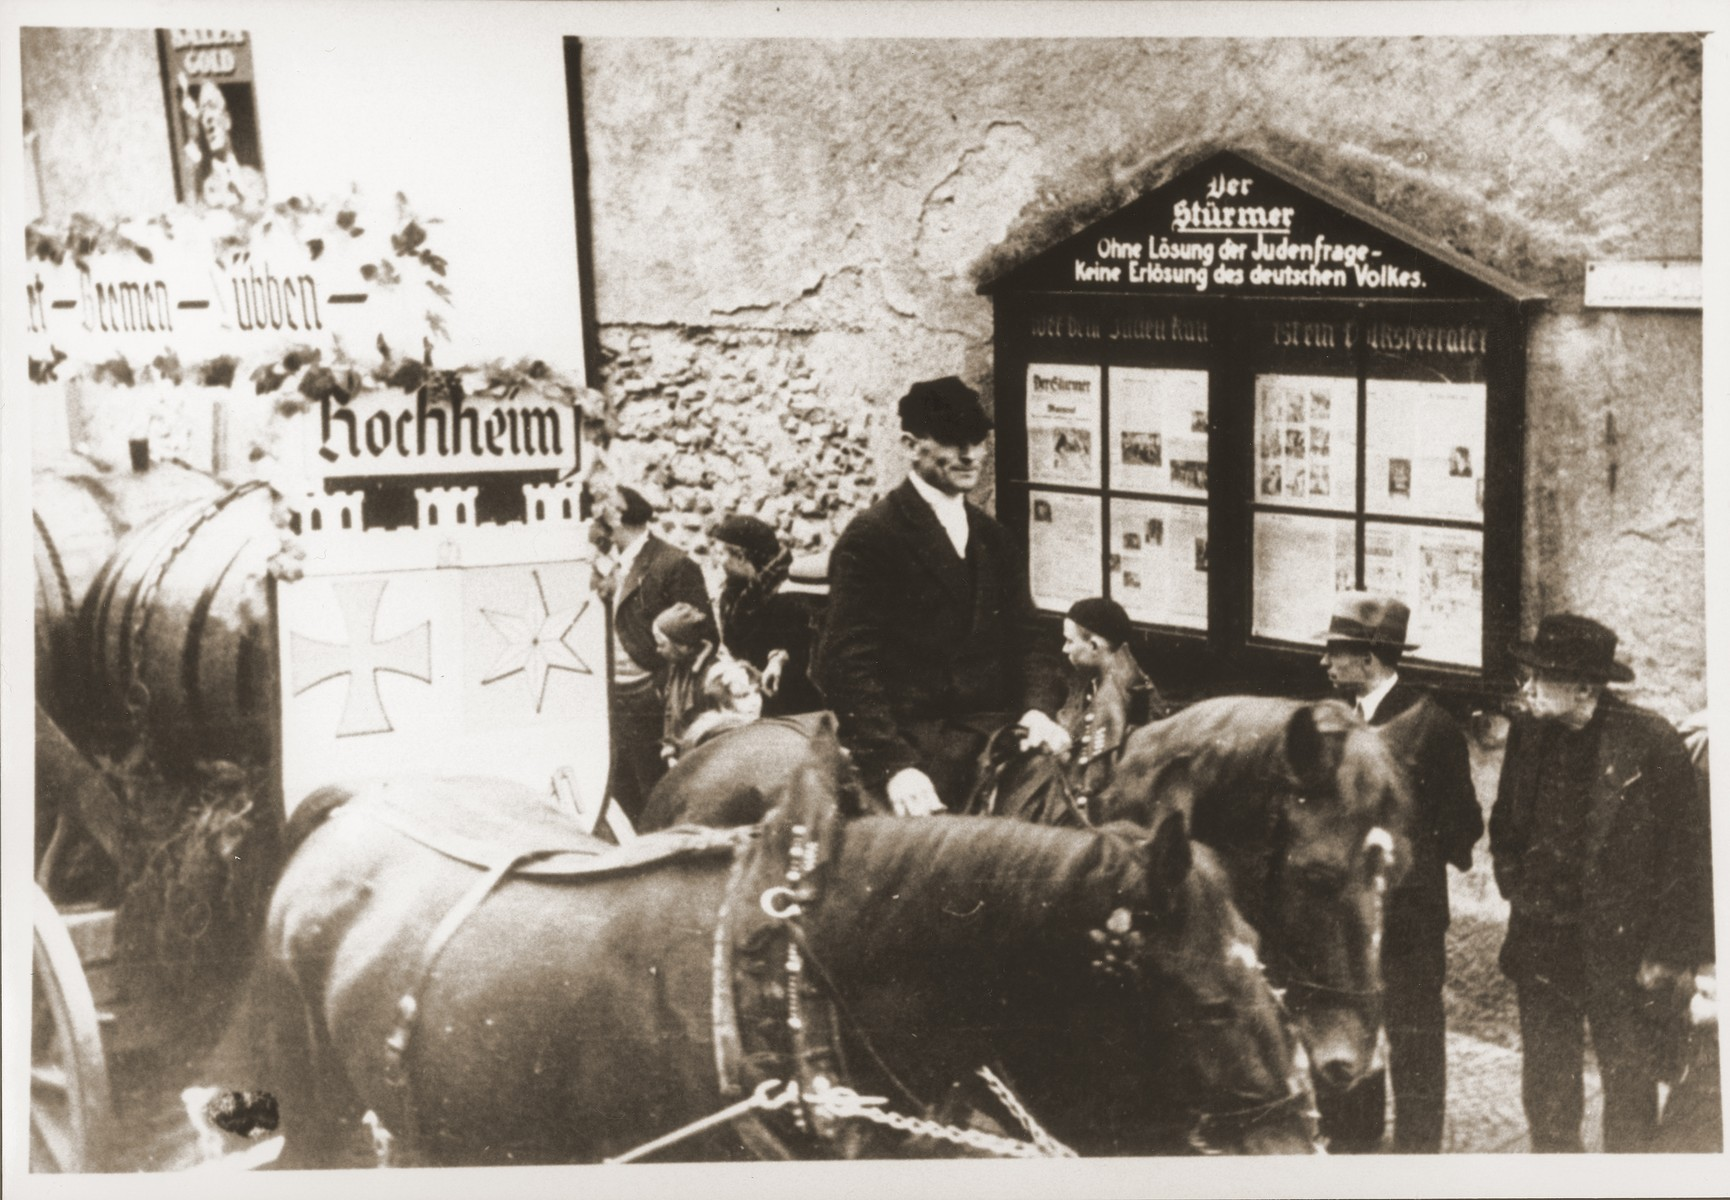 """A decorated beer wagon, one of the floats in the Hochheim parade, proceeds down the Kirchstrasse past a Der Stuermer display box bearing the slogan, """"Without a solution to the Jewish question, there is no salvation for the German people."""""""